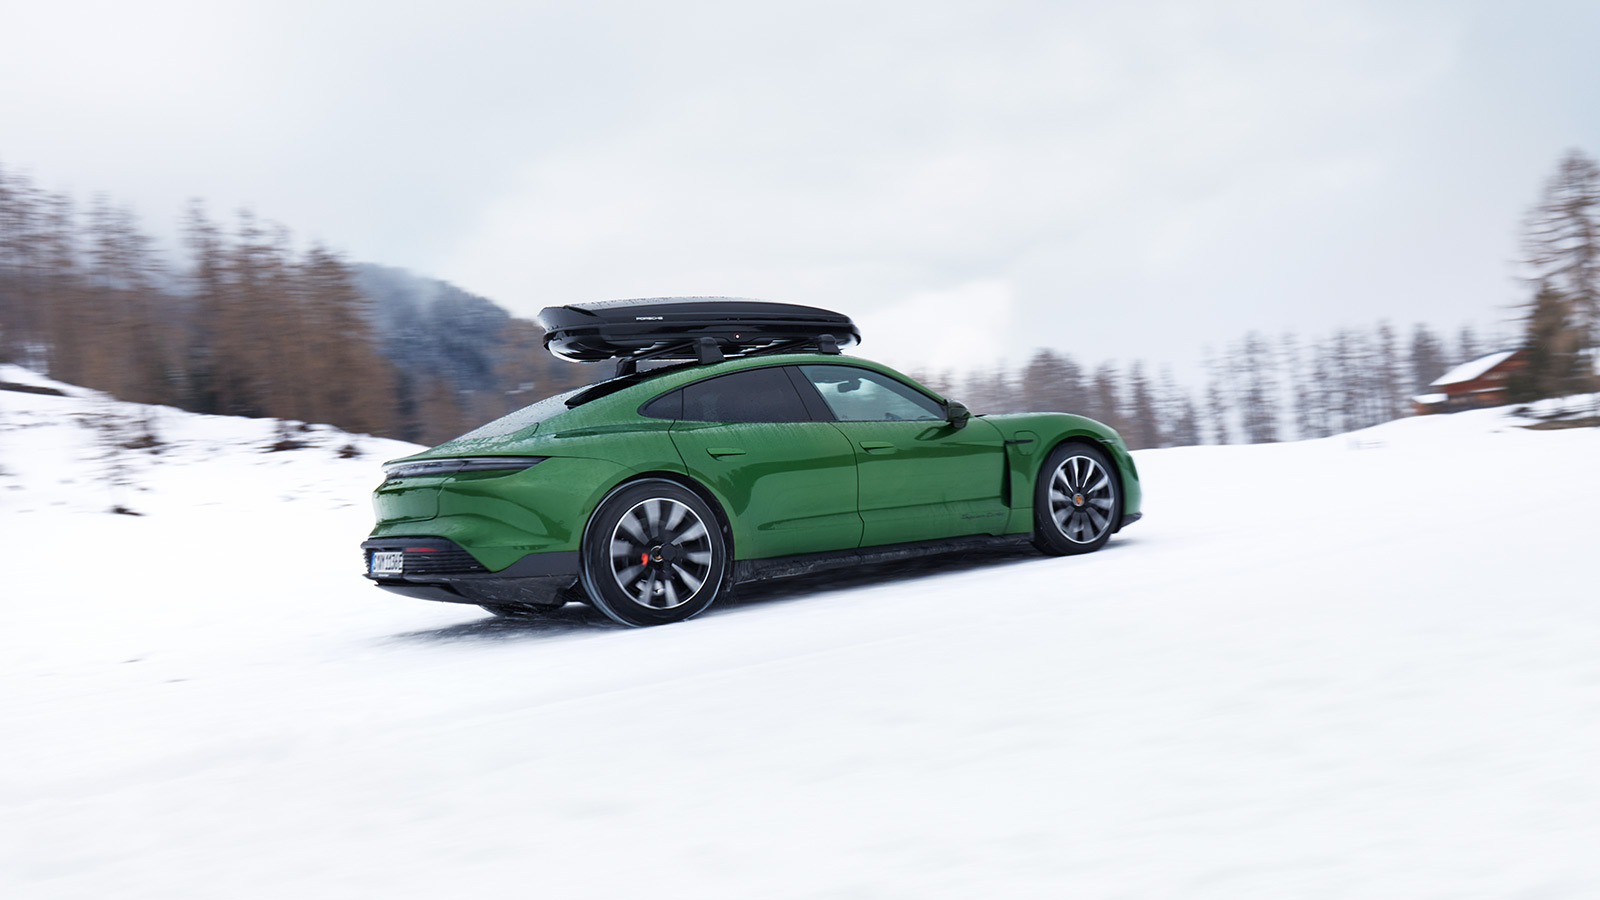 Porsche - ... when is it time for winter tyres?